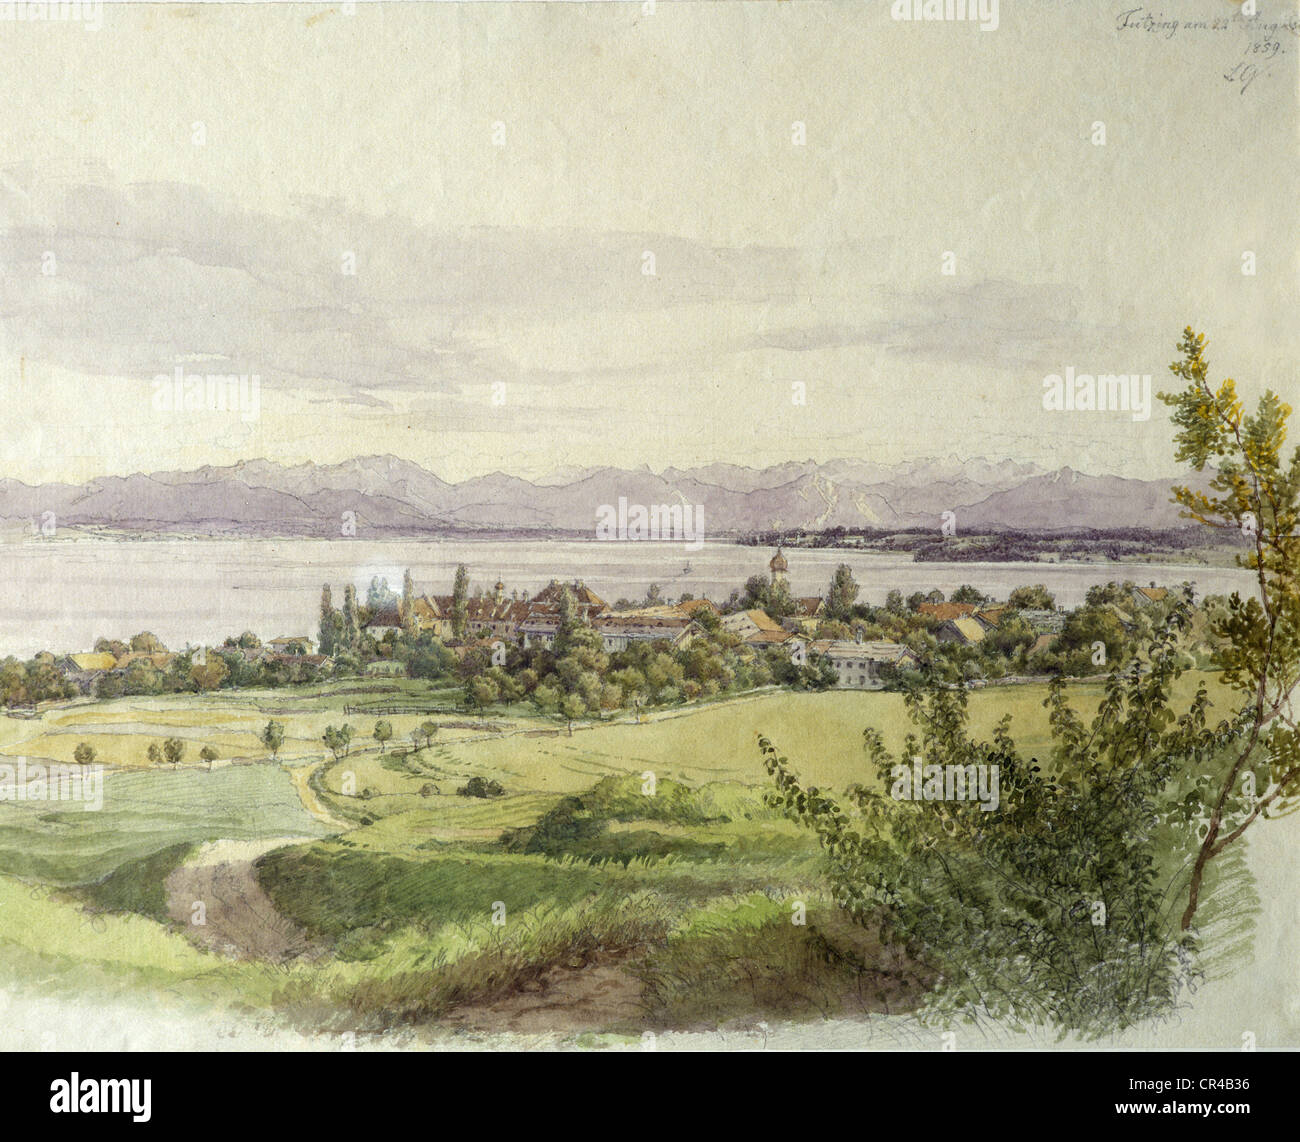 Castle and village of Tutzing, Lake Starnberg, watercolour by L. Quaglio, 22.08.1859, Upper Bavaria, Germany, Europe - Stock Image